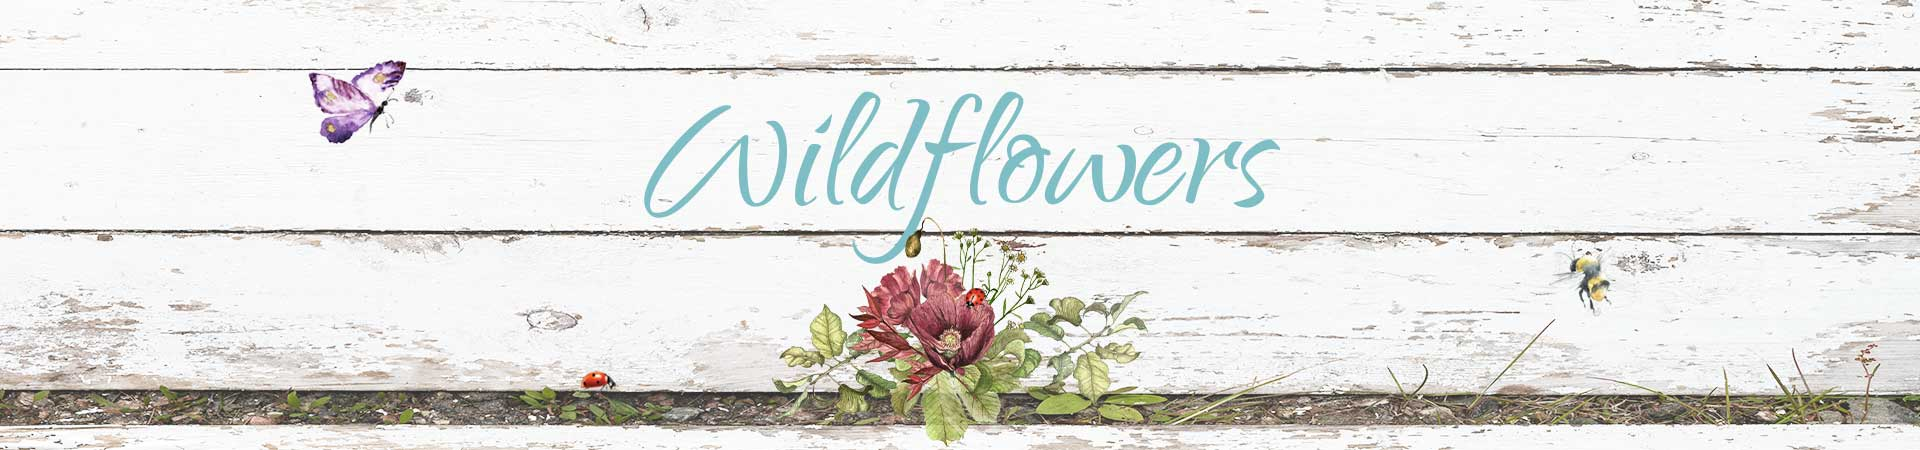 Wildflowers header image